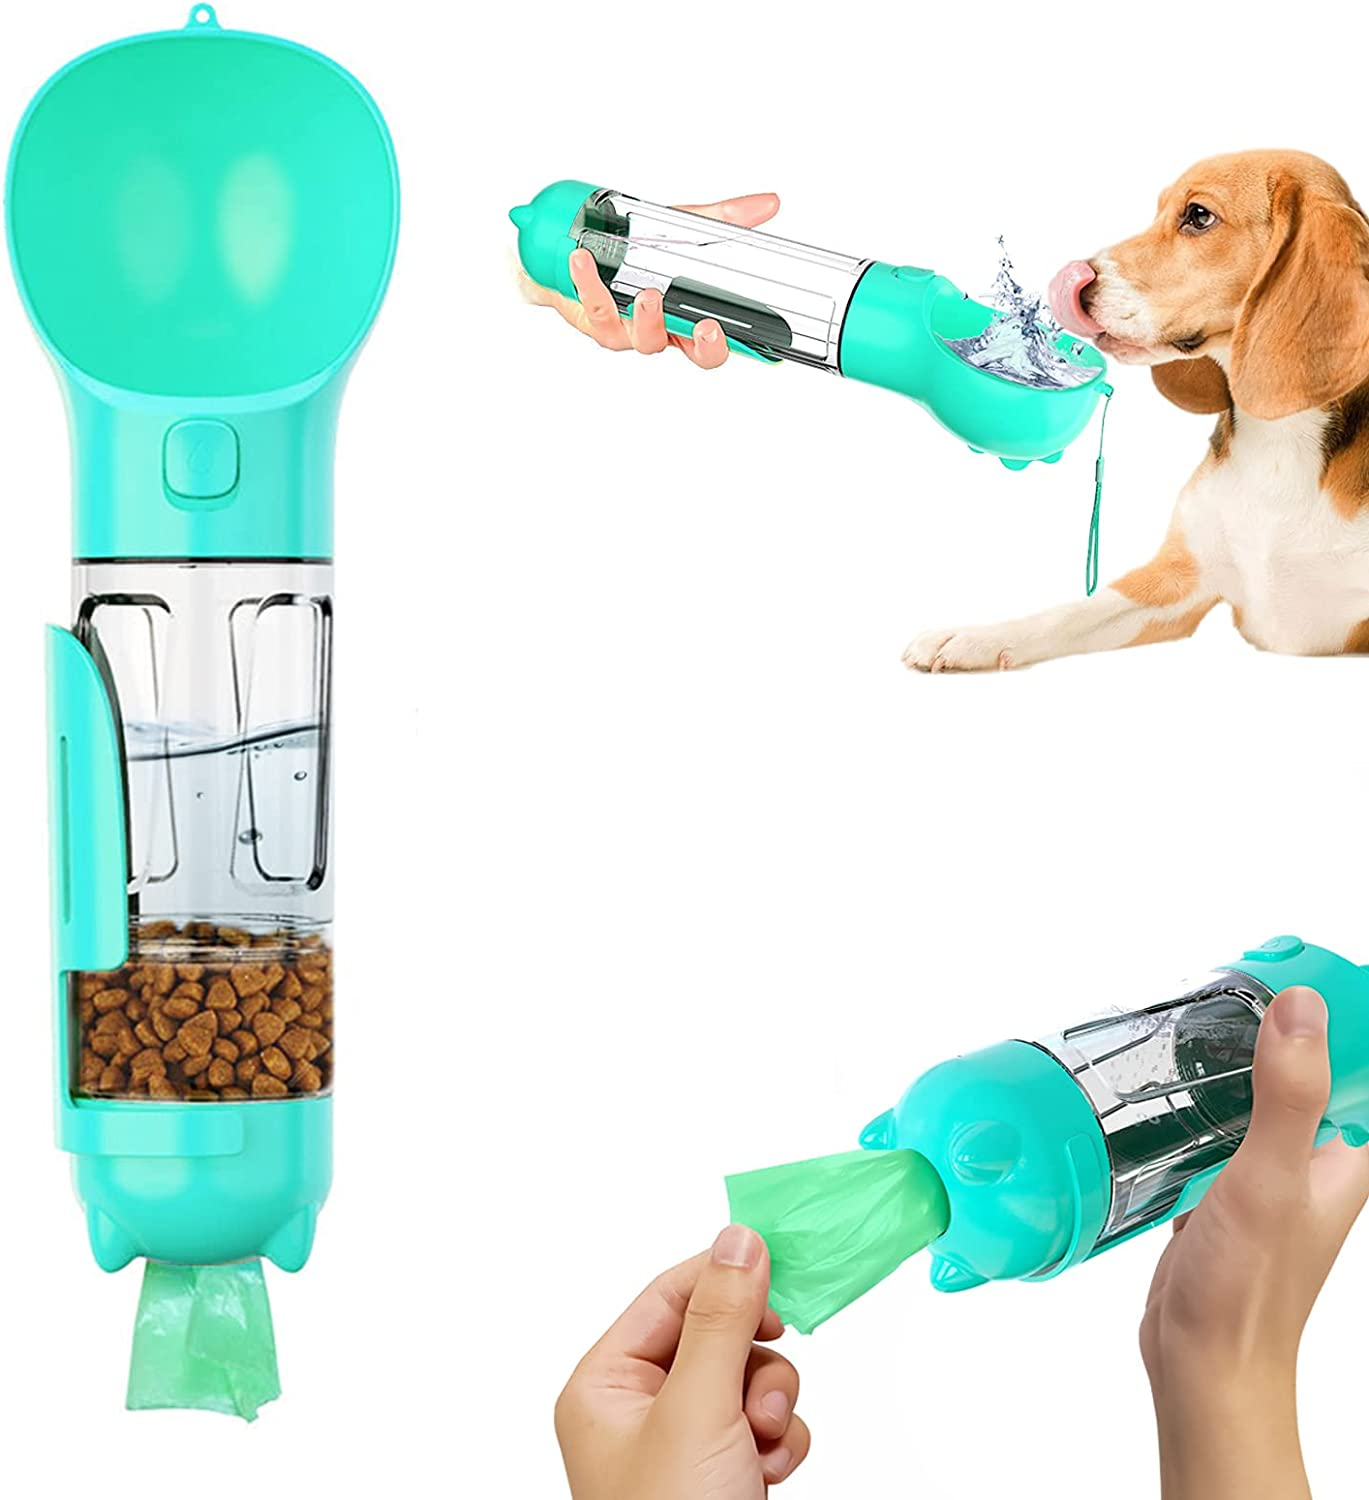 Dog Water Bottle Multifunction 4 in 1 Portable Dog Cat Water Dispenser with Food Container and Poop Collection Leak Proof Compact Pet Drinking Bottle for Walking Travel Outdoor (300ml, Blue)